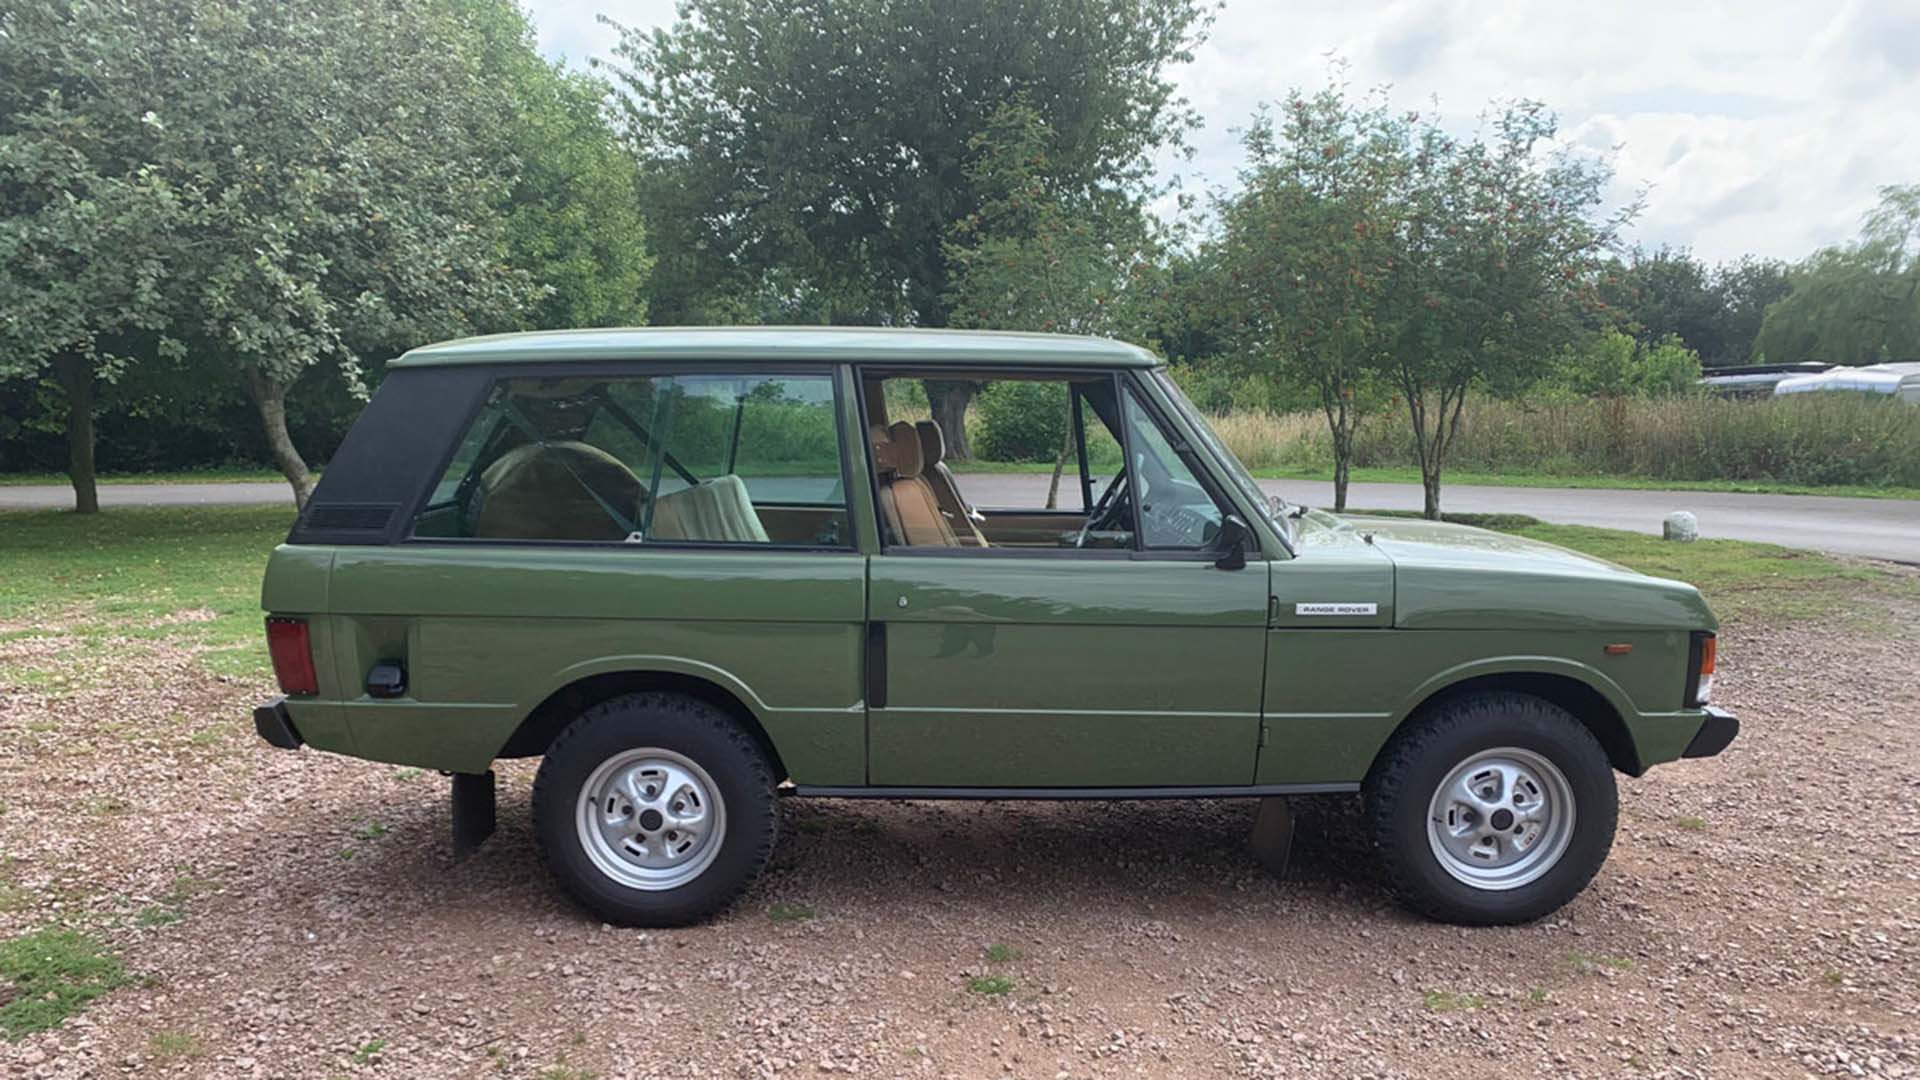 Salvage Hunters Range Rover for sale